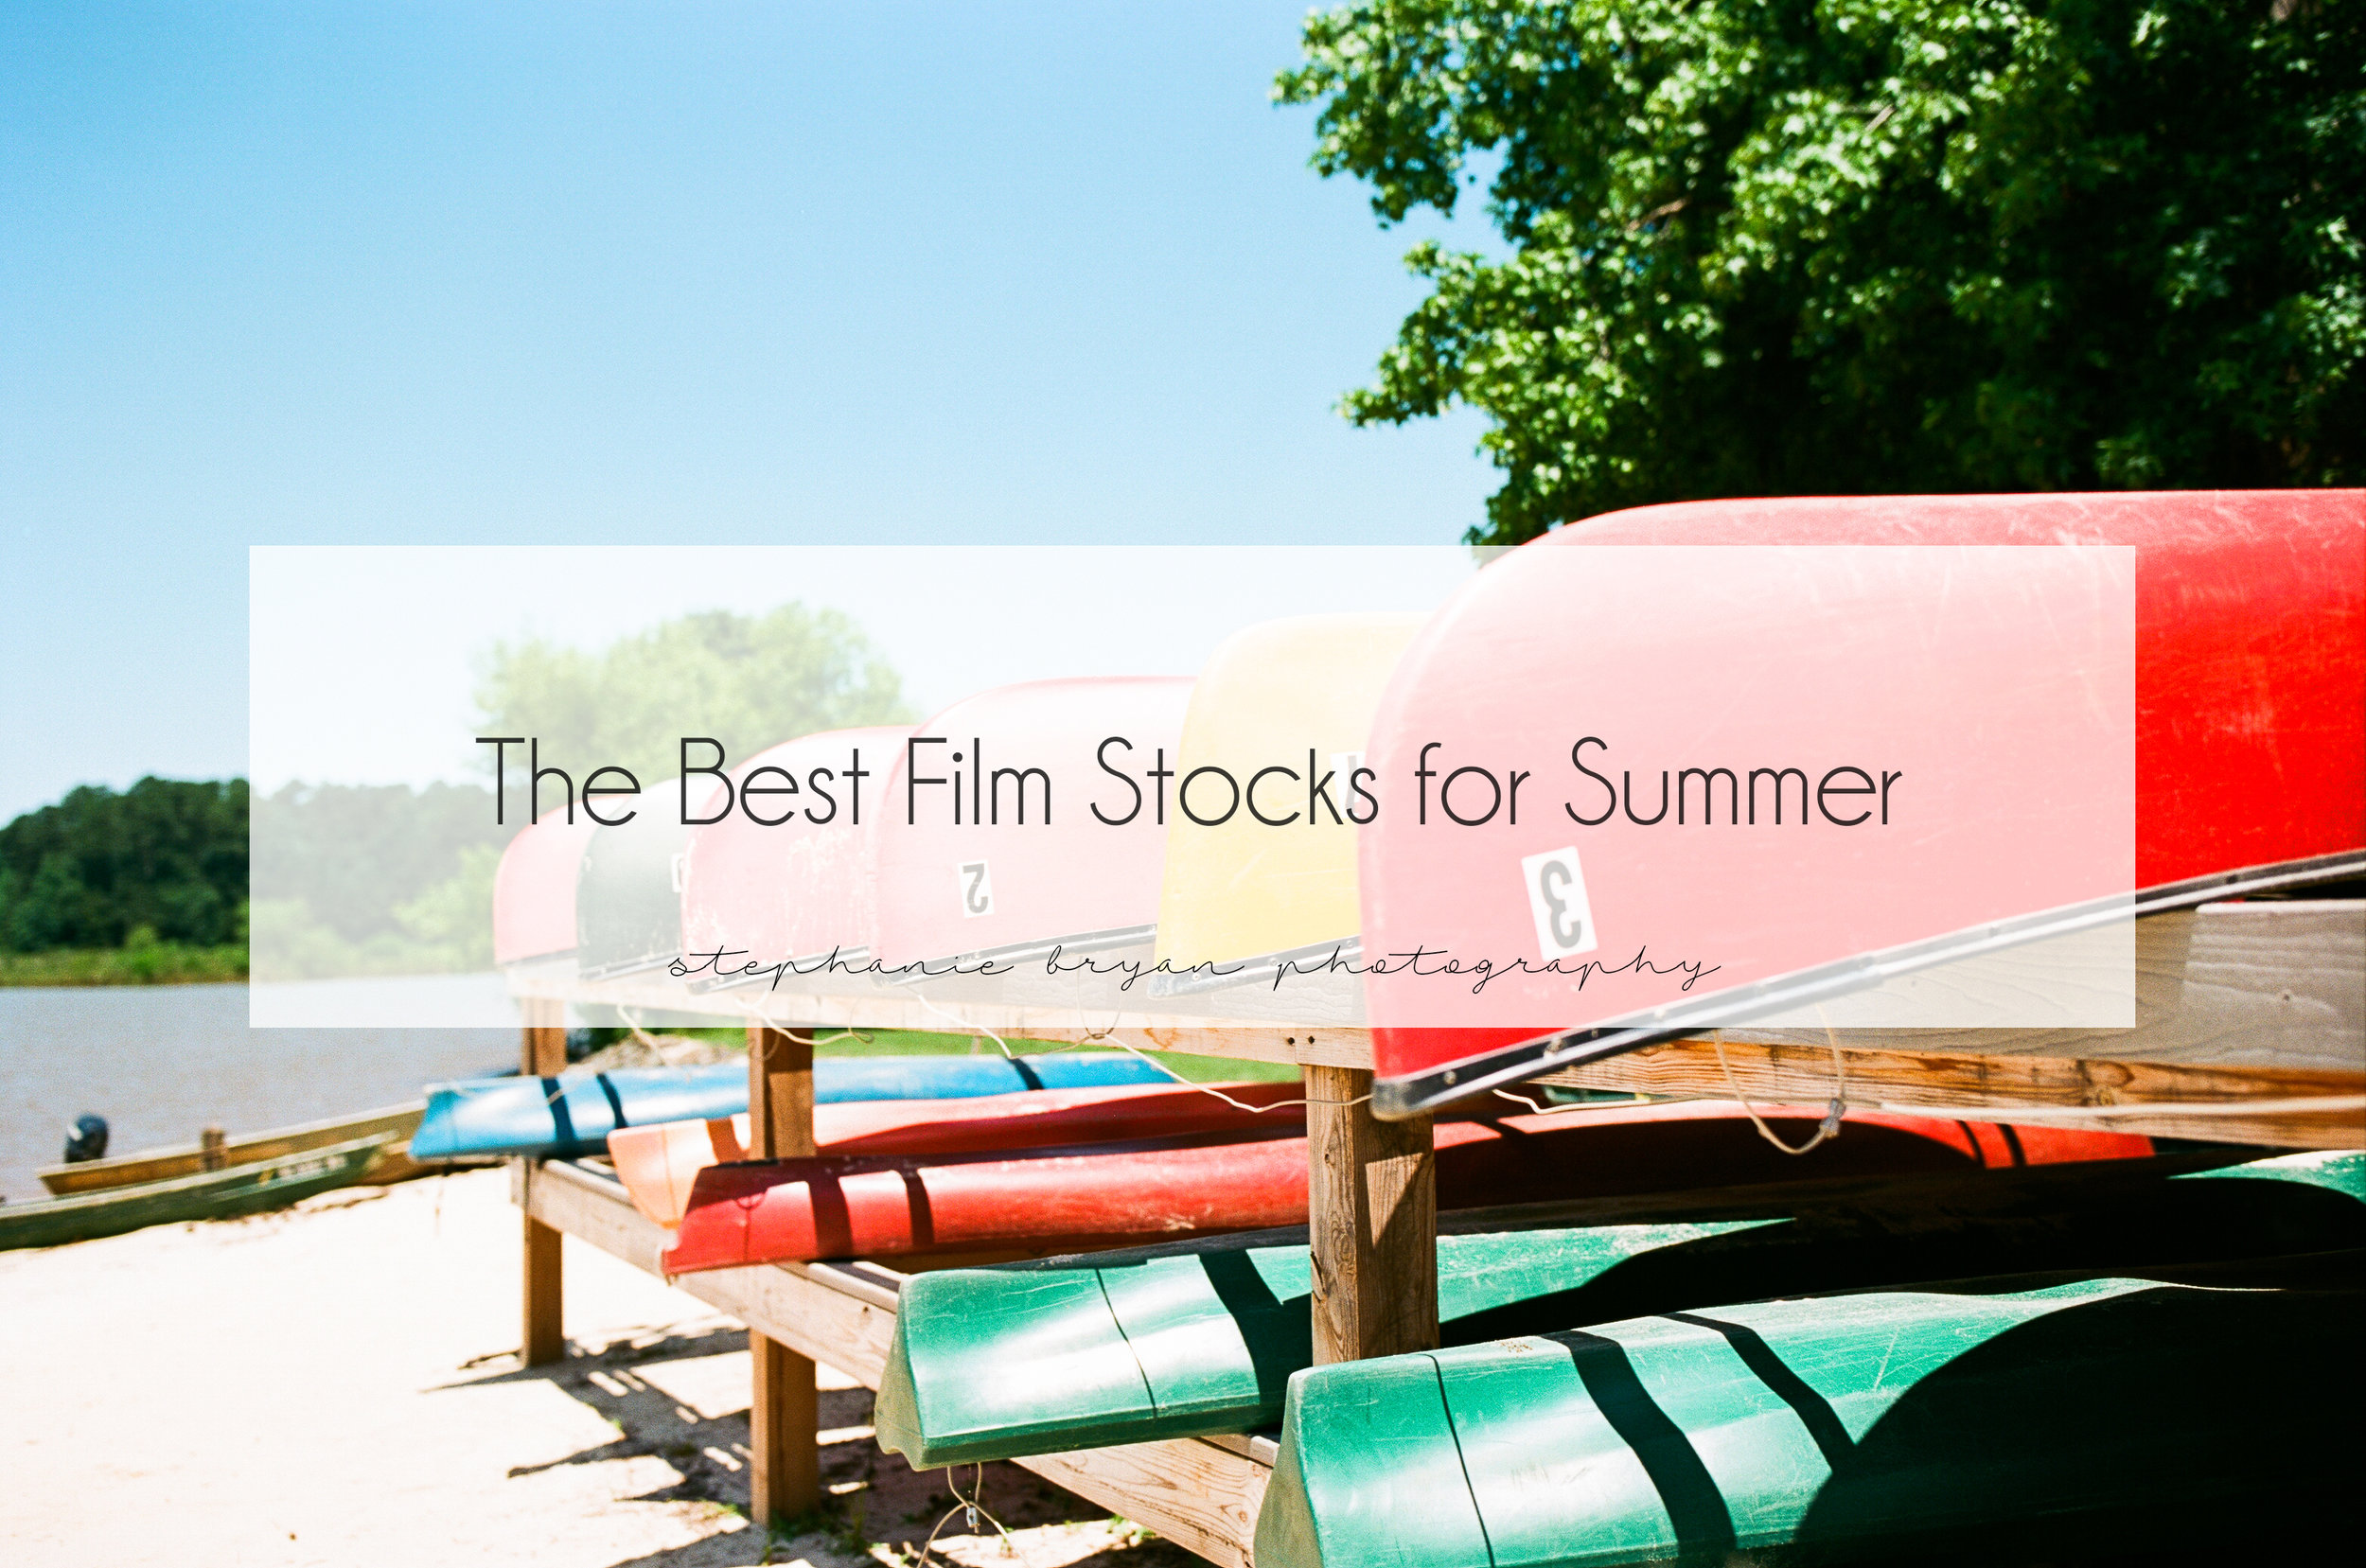 best-film-stocks-for-summer-analogue-photography-tutorial.jpg